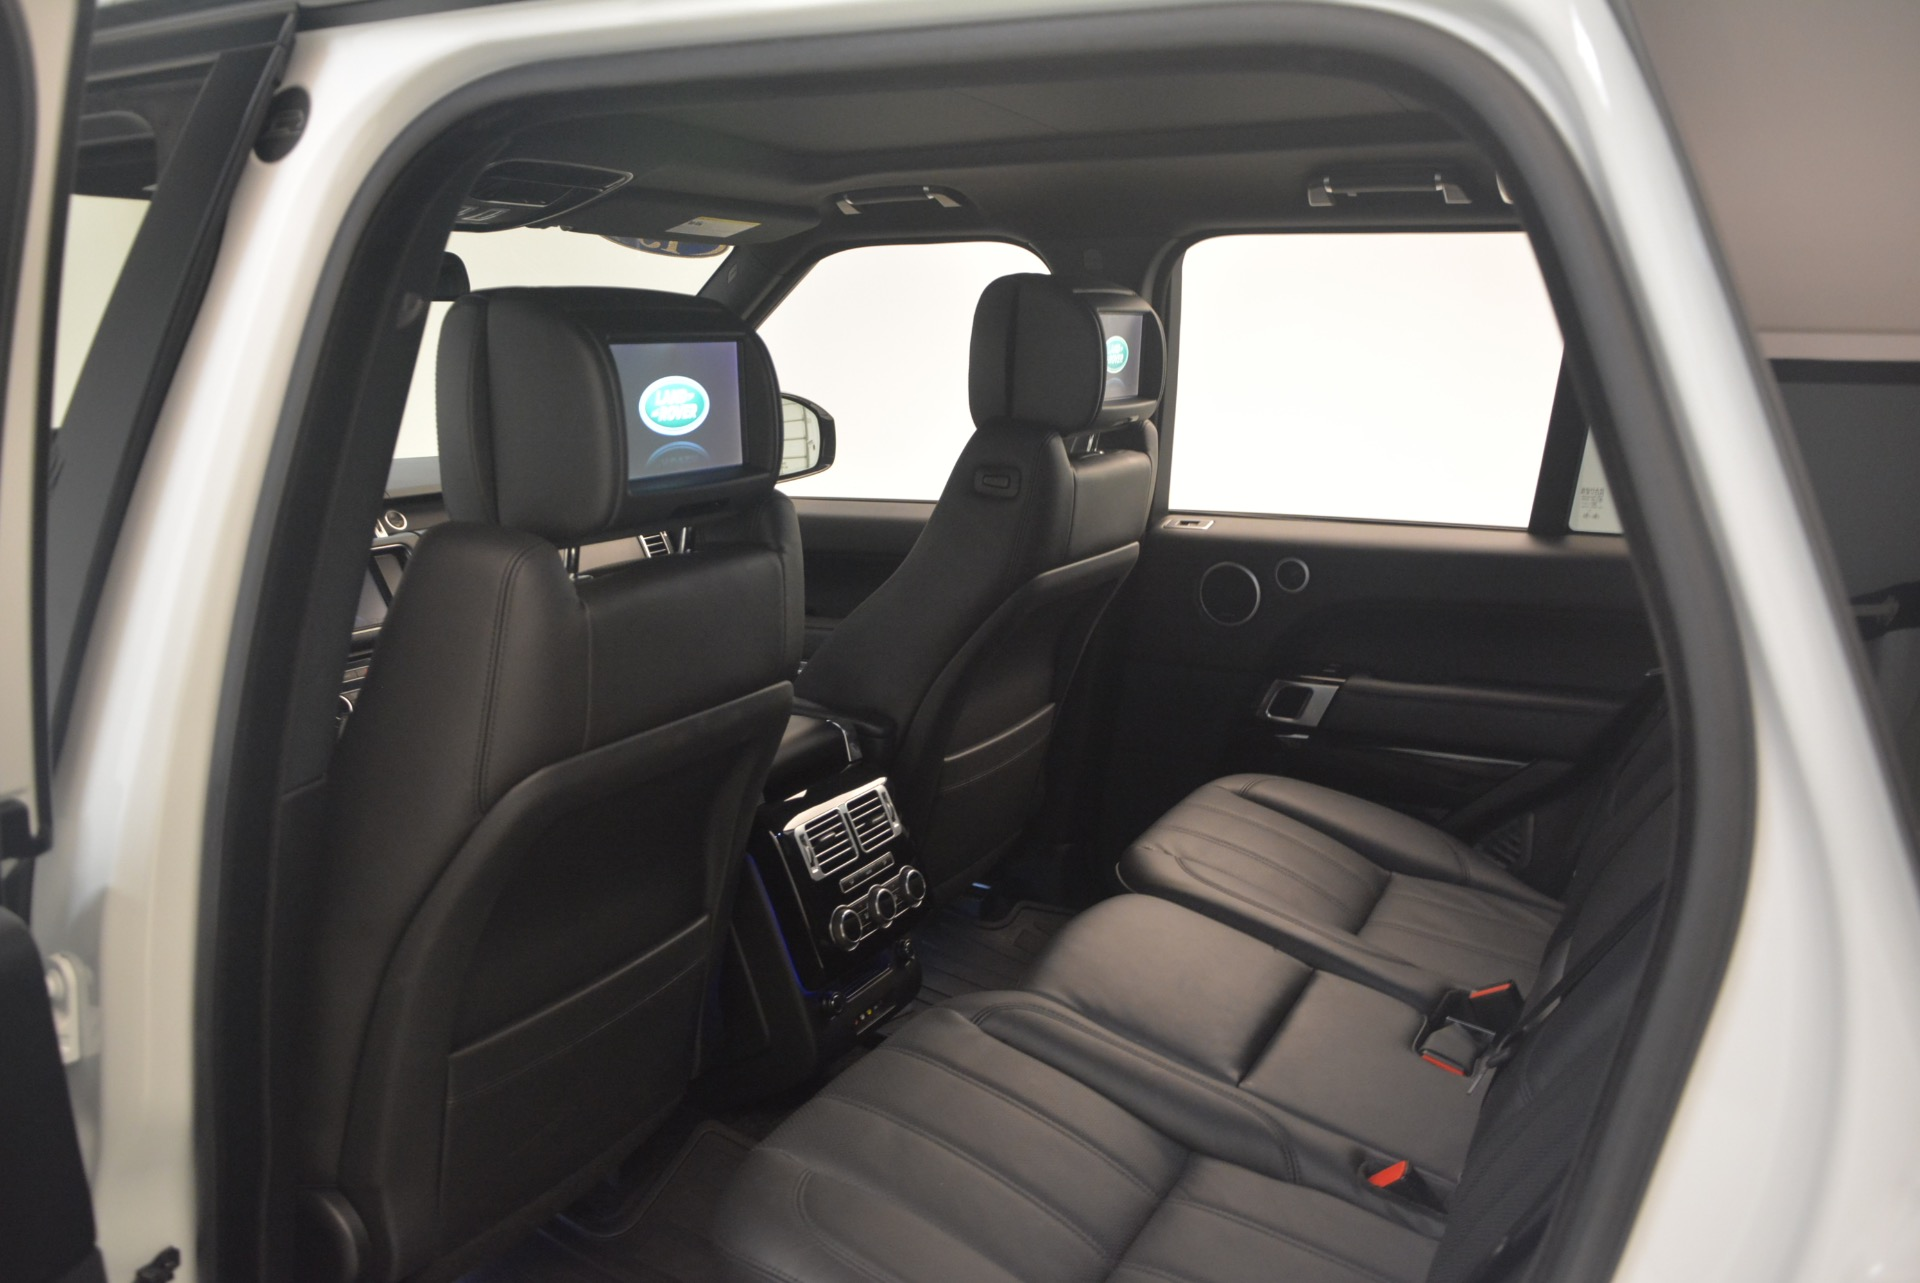 Used 2015 Land Rover Range Rover Supercharged For Sale In Greenwich, CT 1292_p22